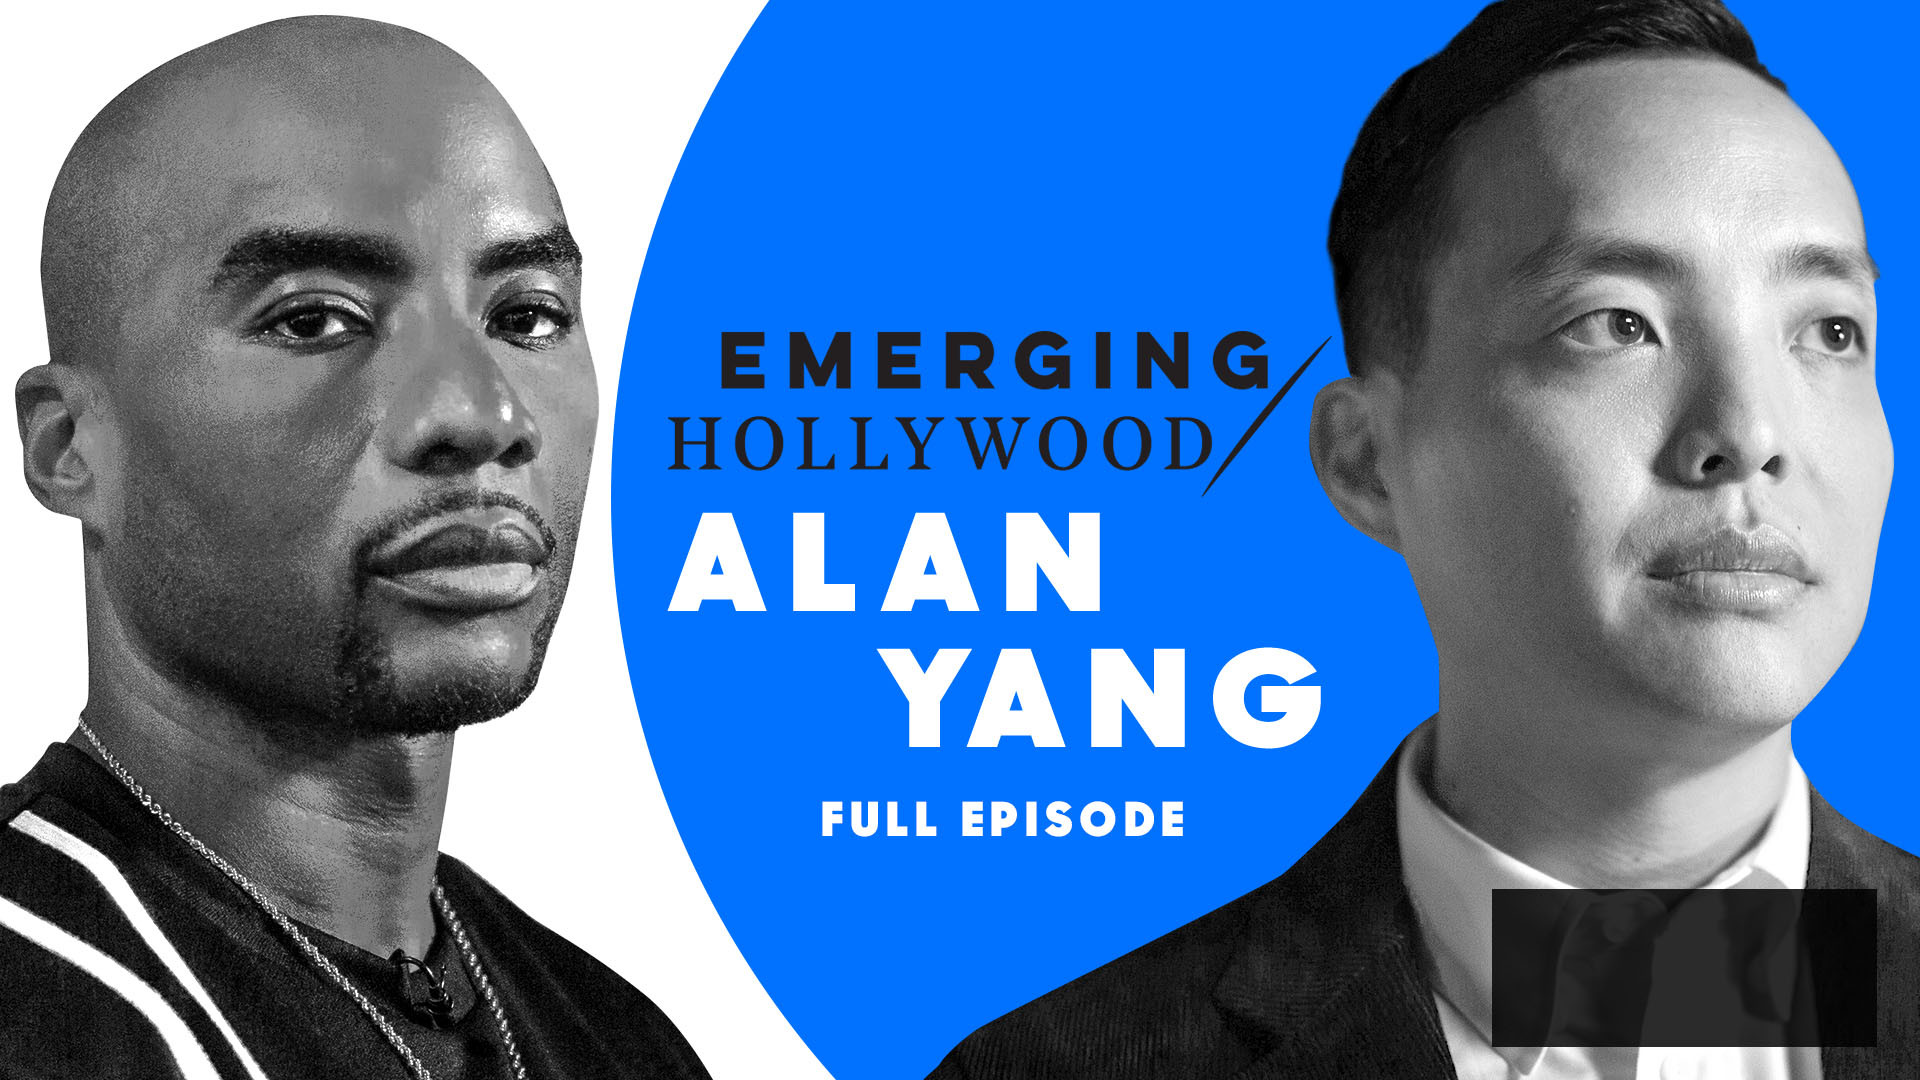 Alan Yang, Charlamagne tha God Talk Inclusion, Diversity | Emerging Hollywood - Full Episode